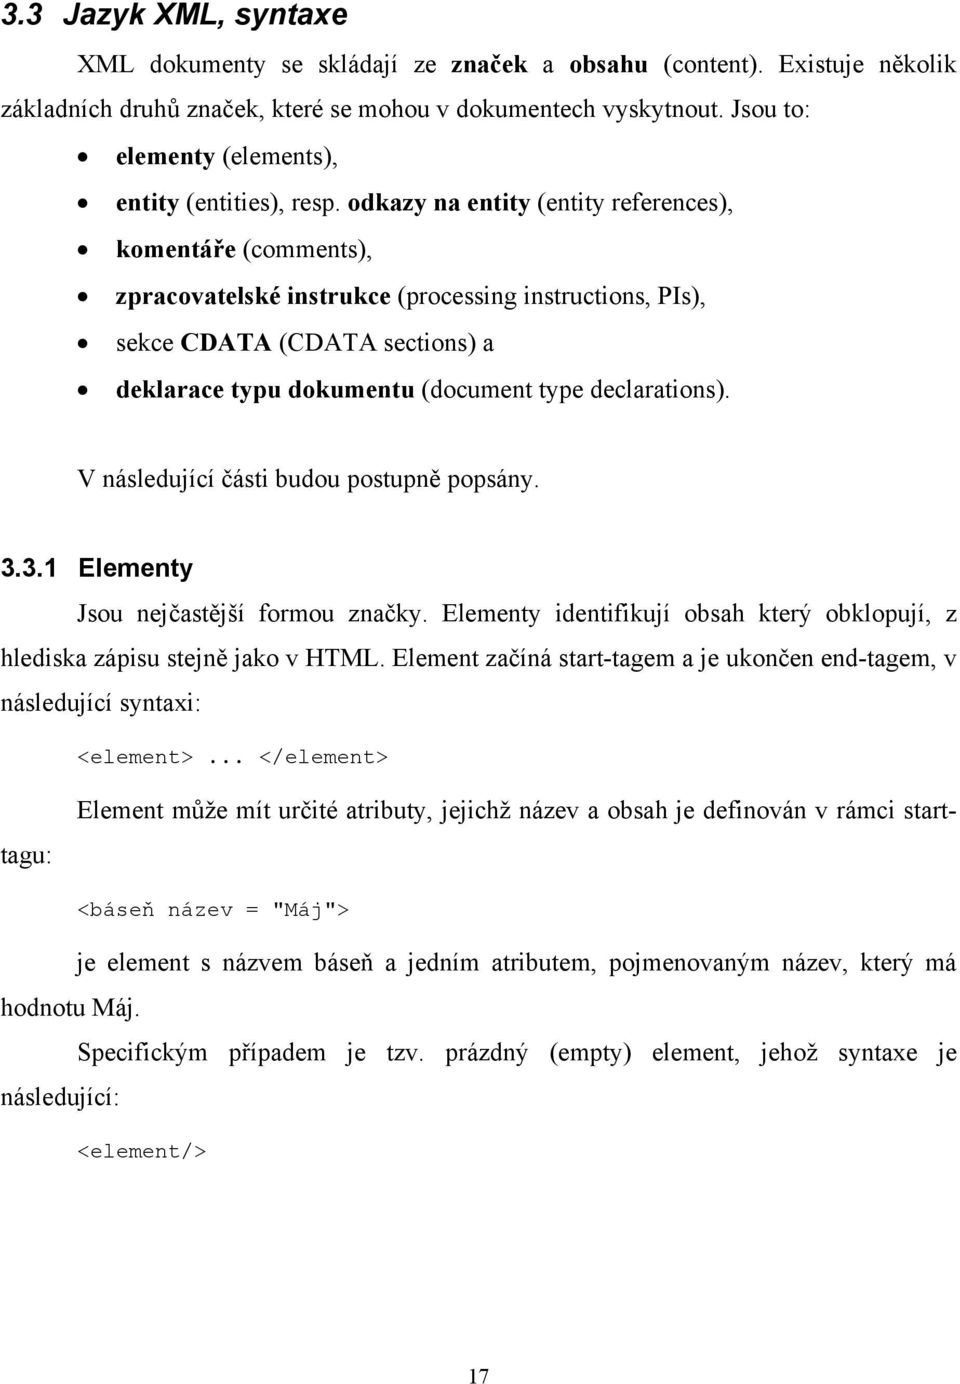 odkazy na entity (entity references), komentáře (comments), zpracovatelské instrukce (processing instructions, PIs), sekce CDATA (CDATA sections) a deklarace typu dokumentu (document type